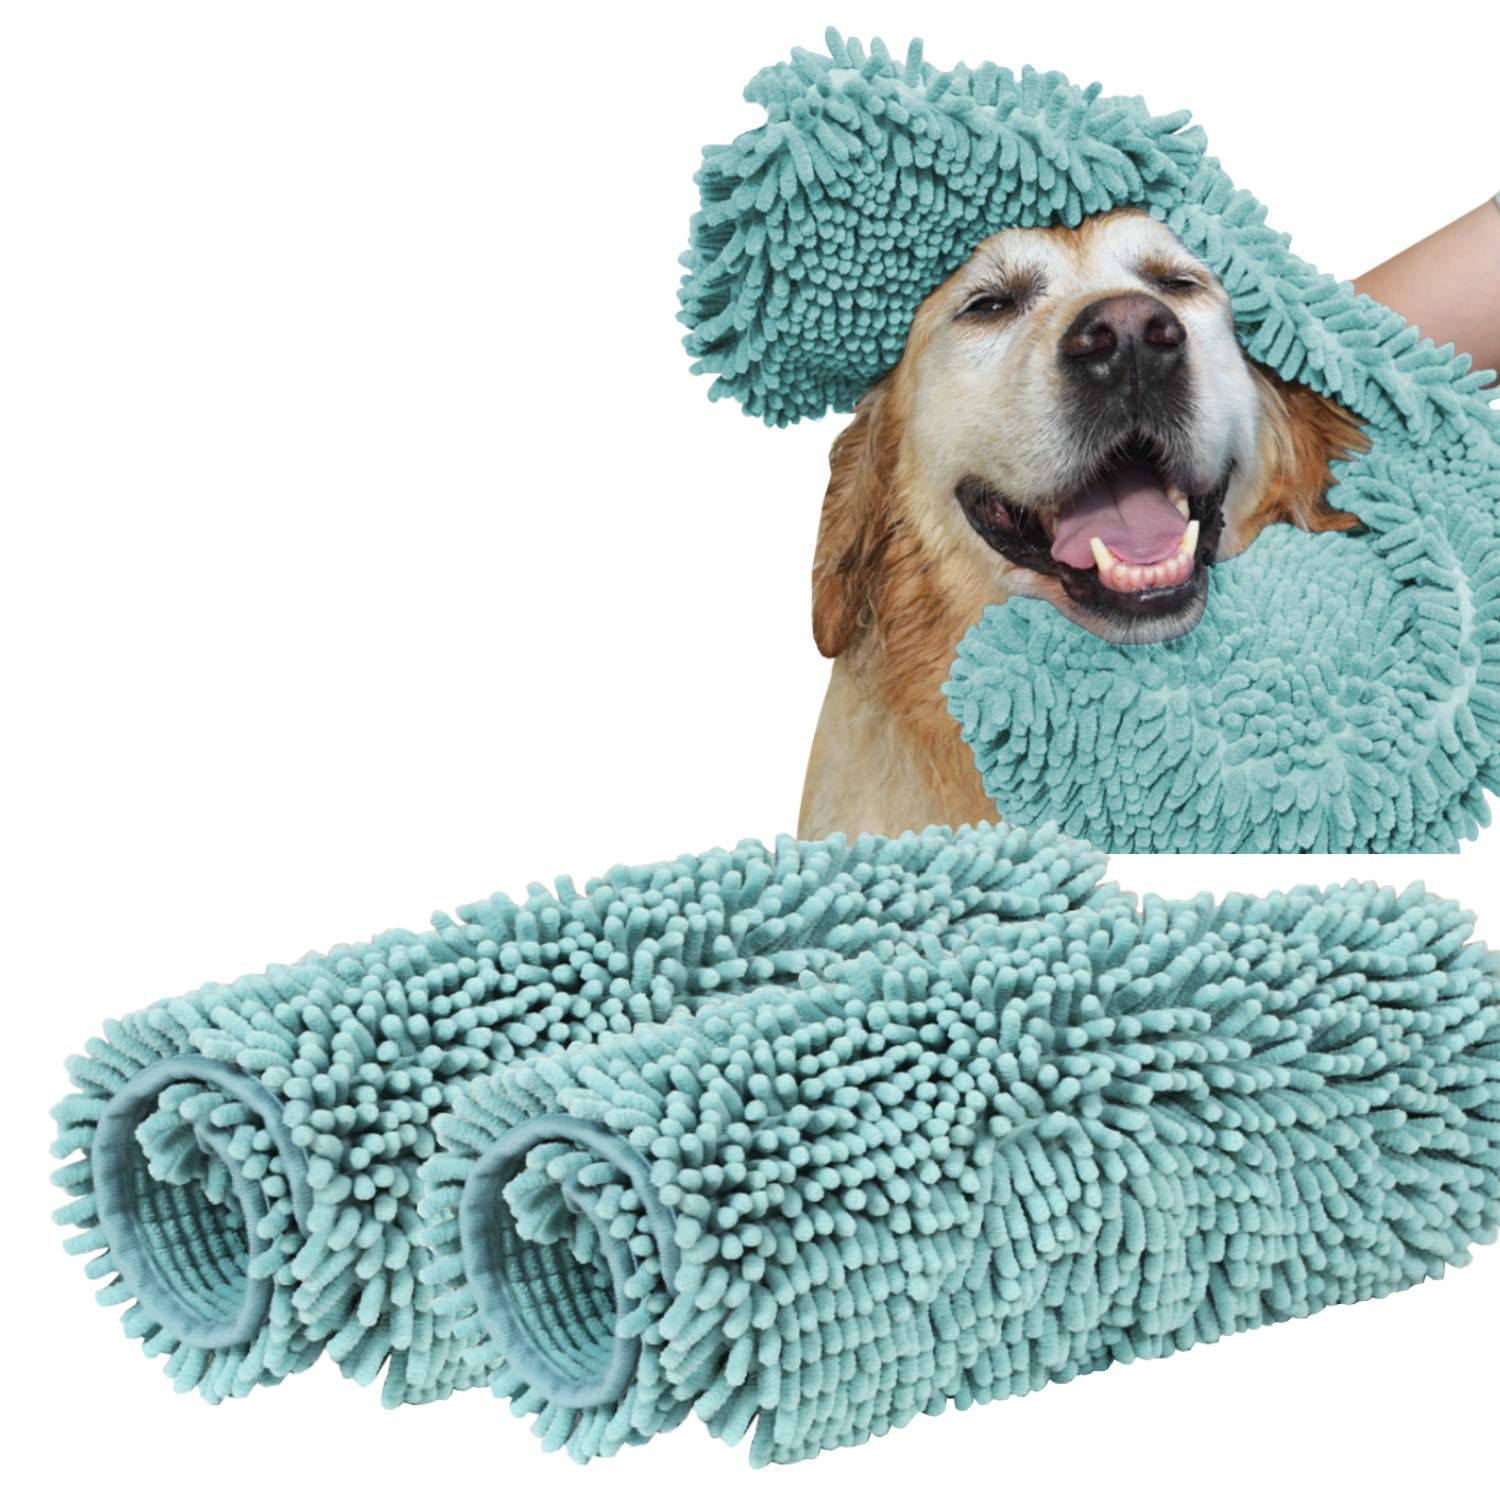 Duck Egg bluee Medial (24\ Duck Egg bluee Medial (24\ Turquoize Ultra Absorbent Dog Towel Super Shammy with Hand Pockets Microfiber Chenille Dog Bath Dry Towel Washable Grooming Animal Towel Duckshell bluee-2 Pack Size 24  by 14